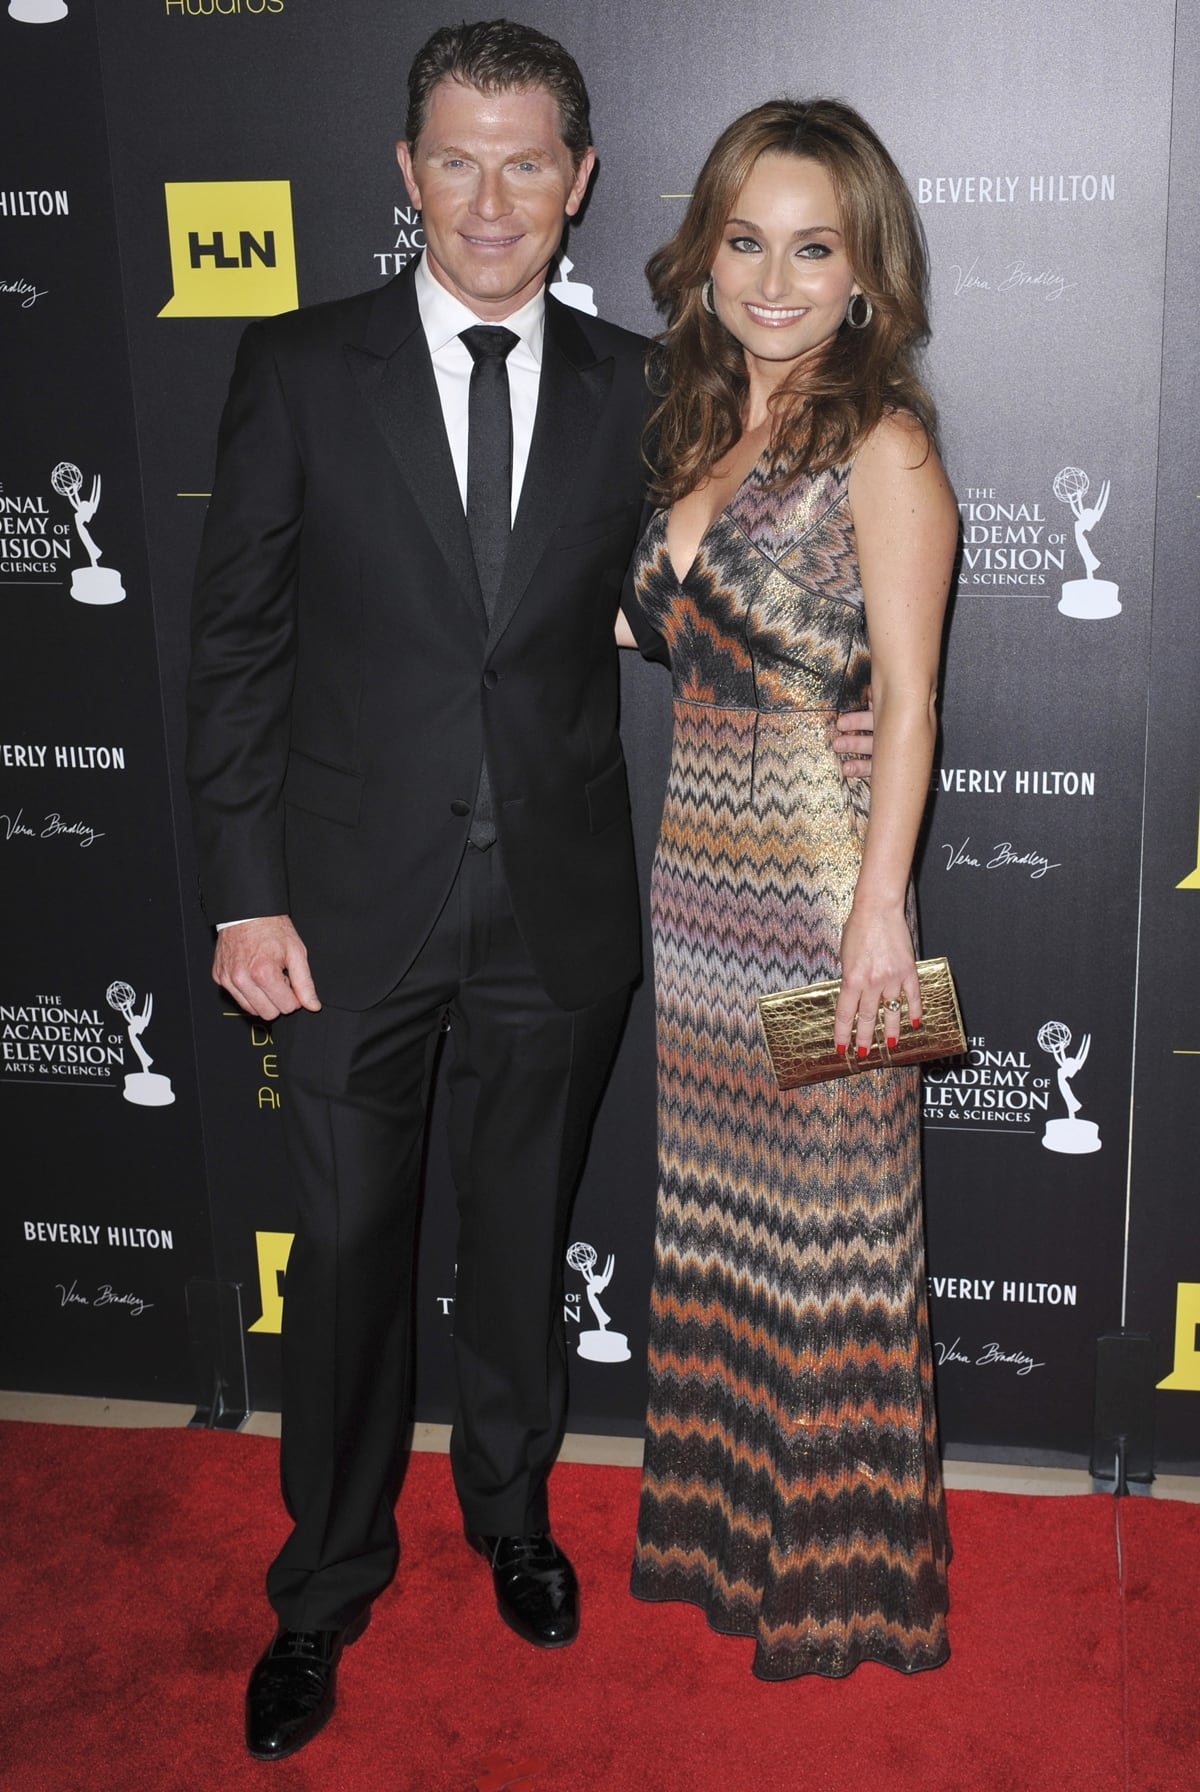 Bobby Flay and Giada De Laurentiis attend the 39th Annual Daytime Emmy Awards